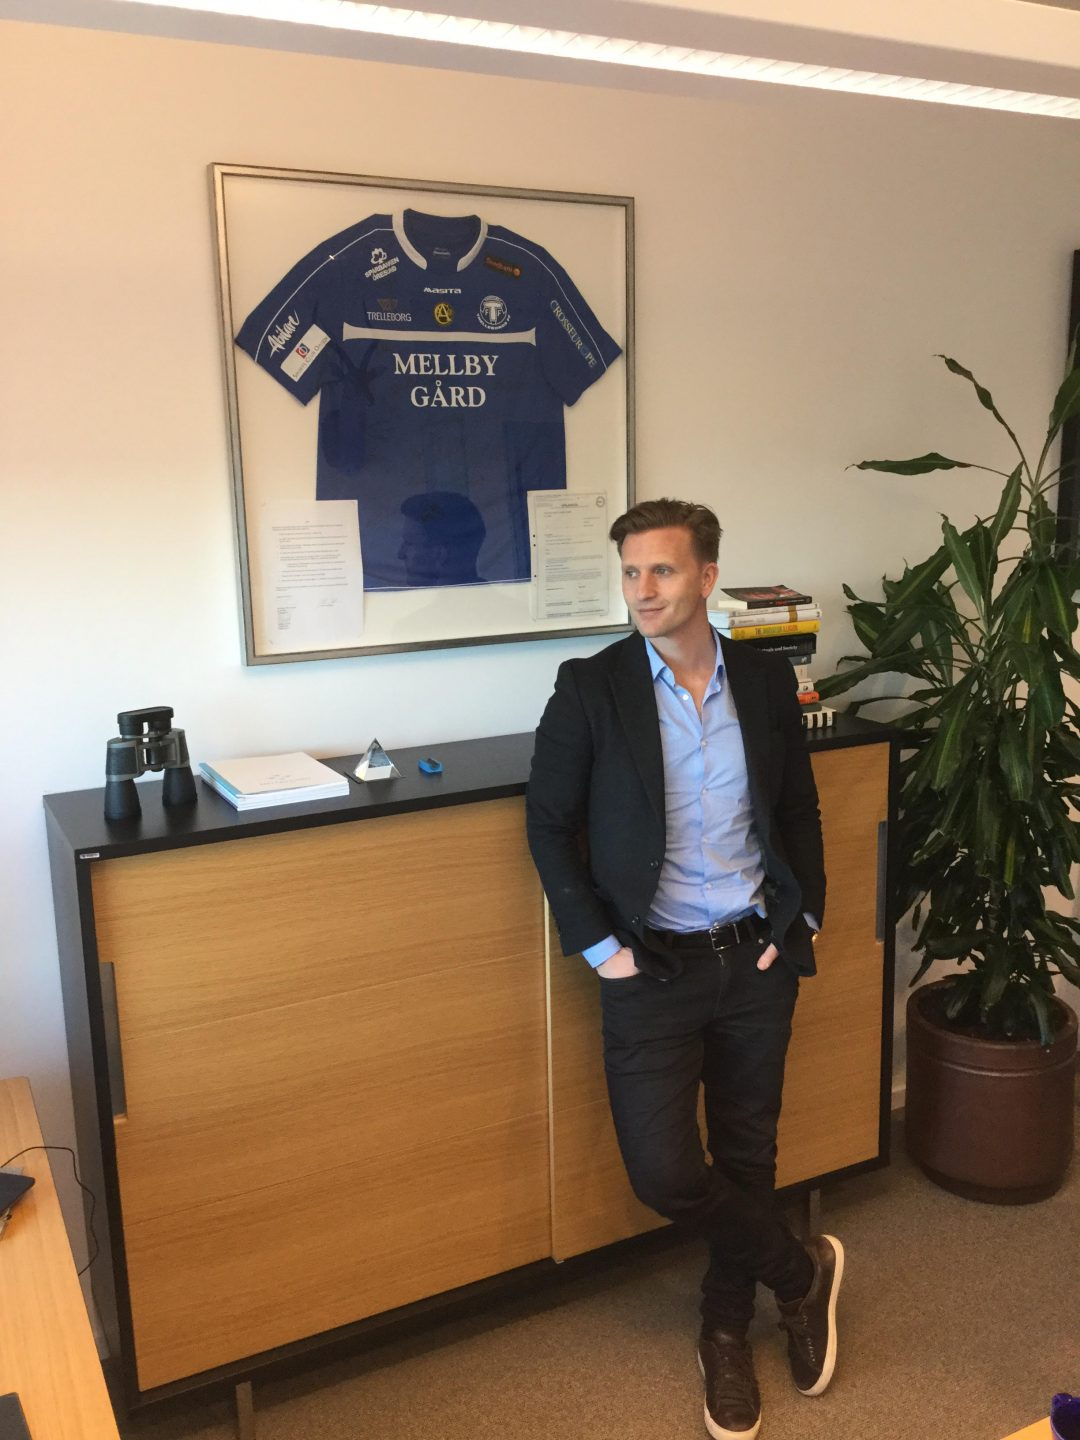 Photo of Mellby Gårds Johan Andersson om TFF:s framtid